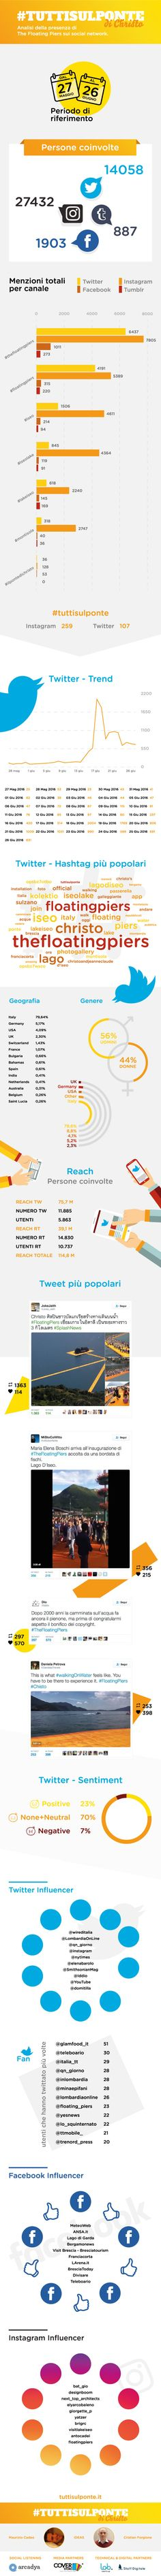 infografica social del 26 06 2016 The Floating Piers di Christo da #tuttisulponte.